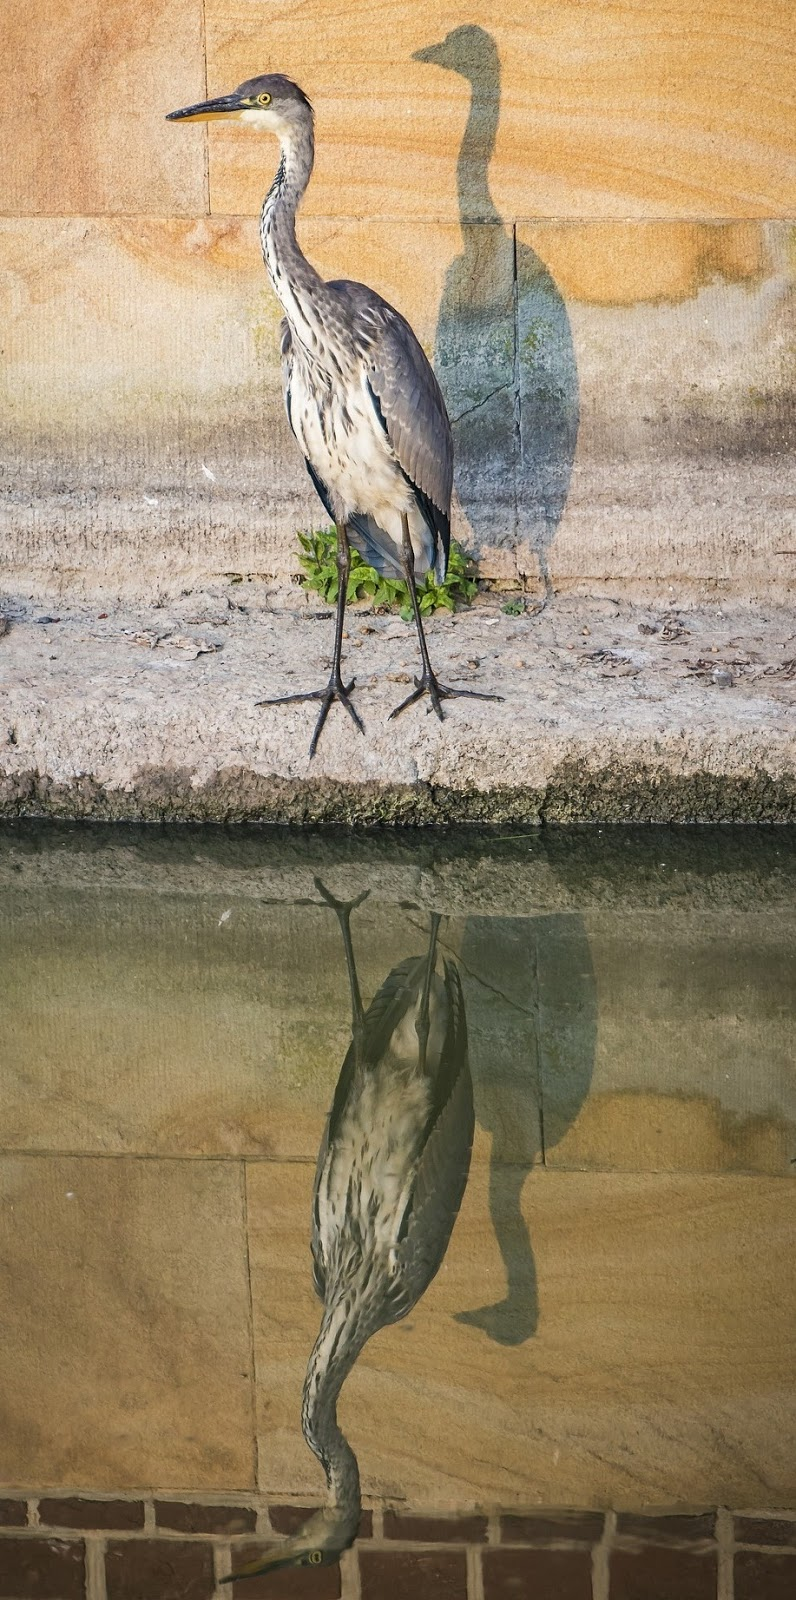 Heron's amazing reflections.